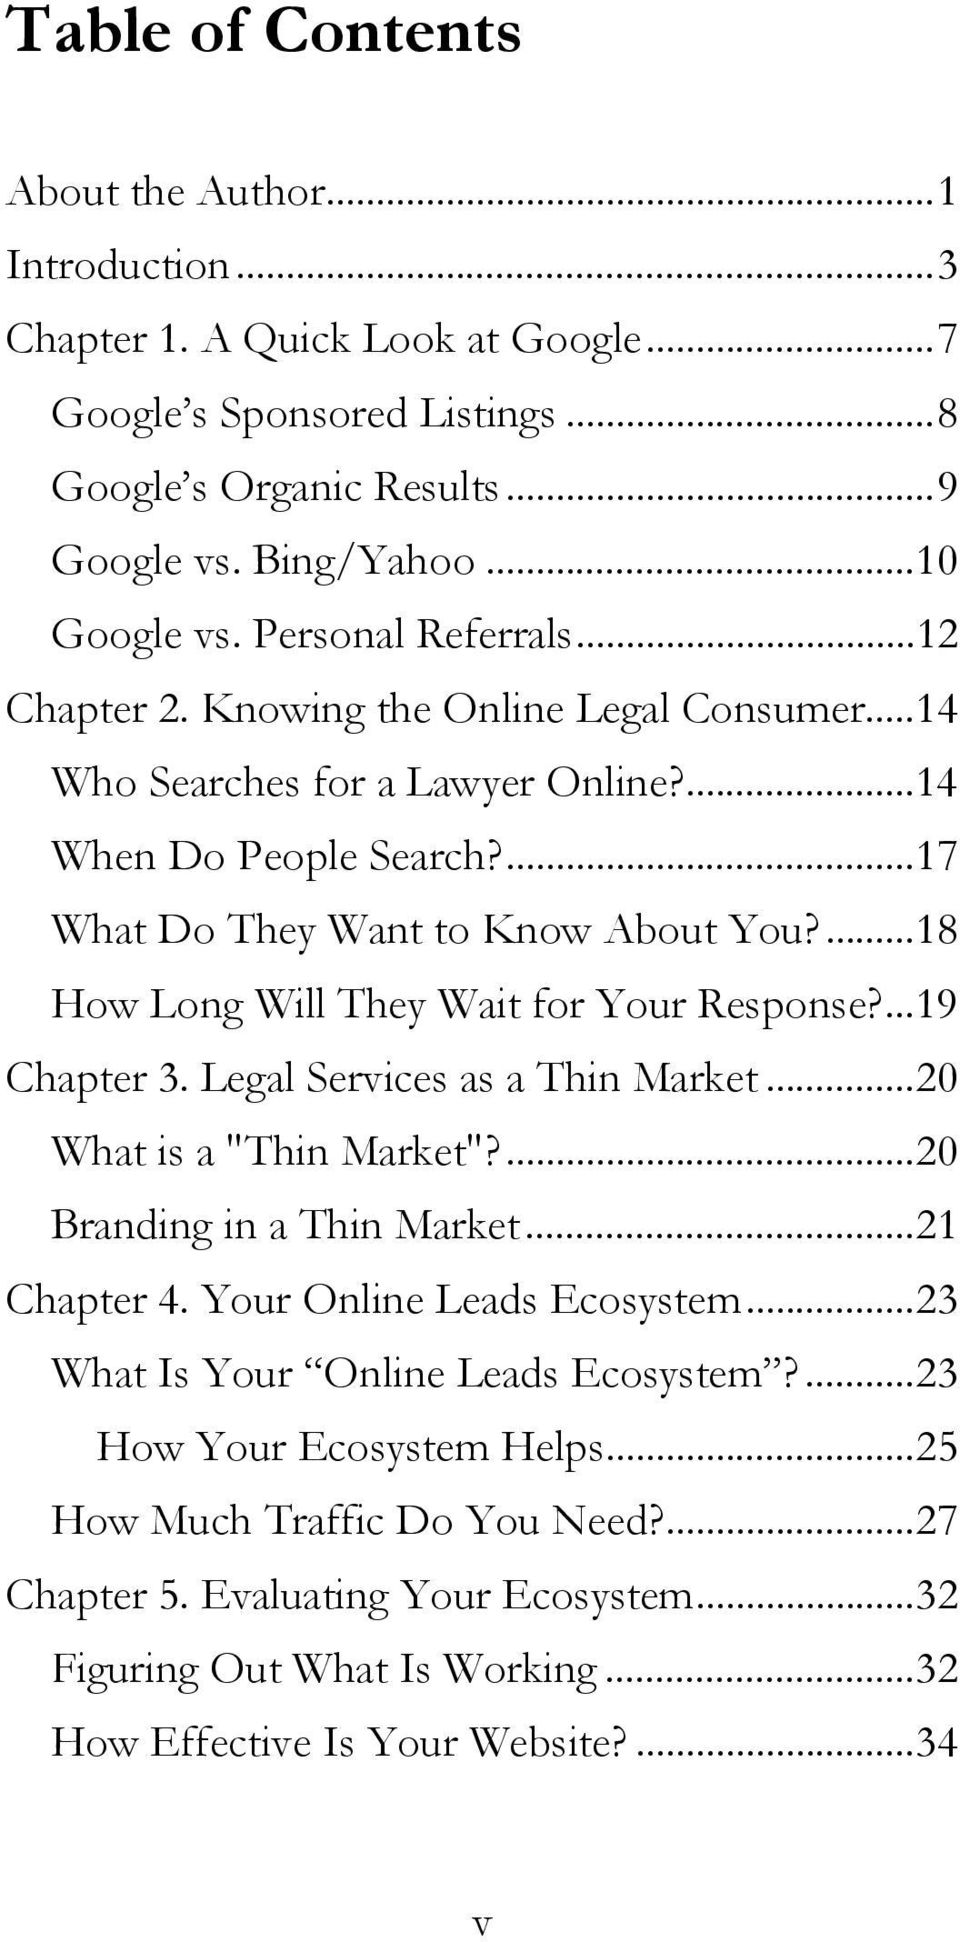 "...18 How Long Will They Wait for Your Response?...19 Chapter 3. Legal Services as a Thin Market...20 What is a ""Thin Market""?...20 Branding in a Thin Market...21 Chapter 4."